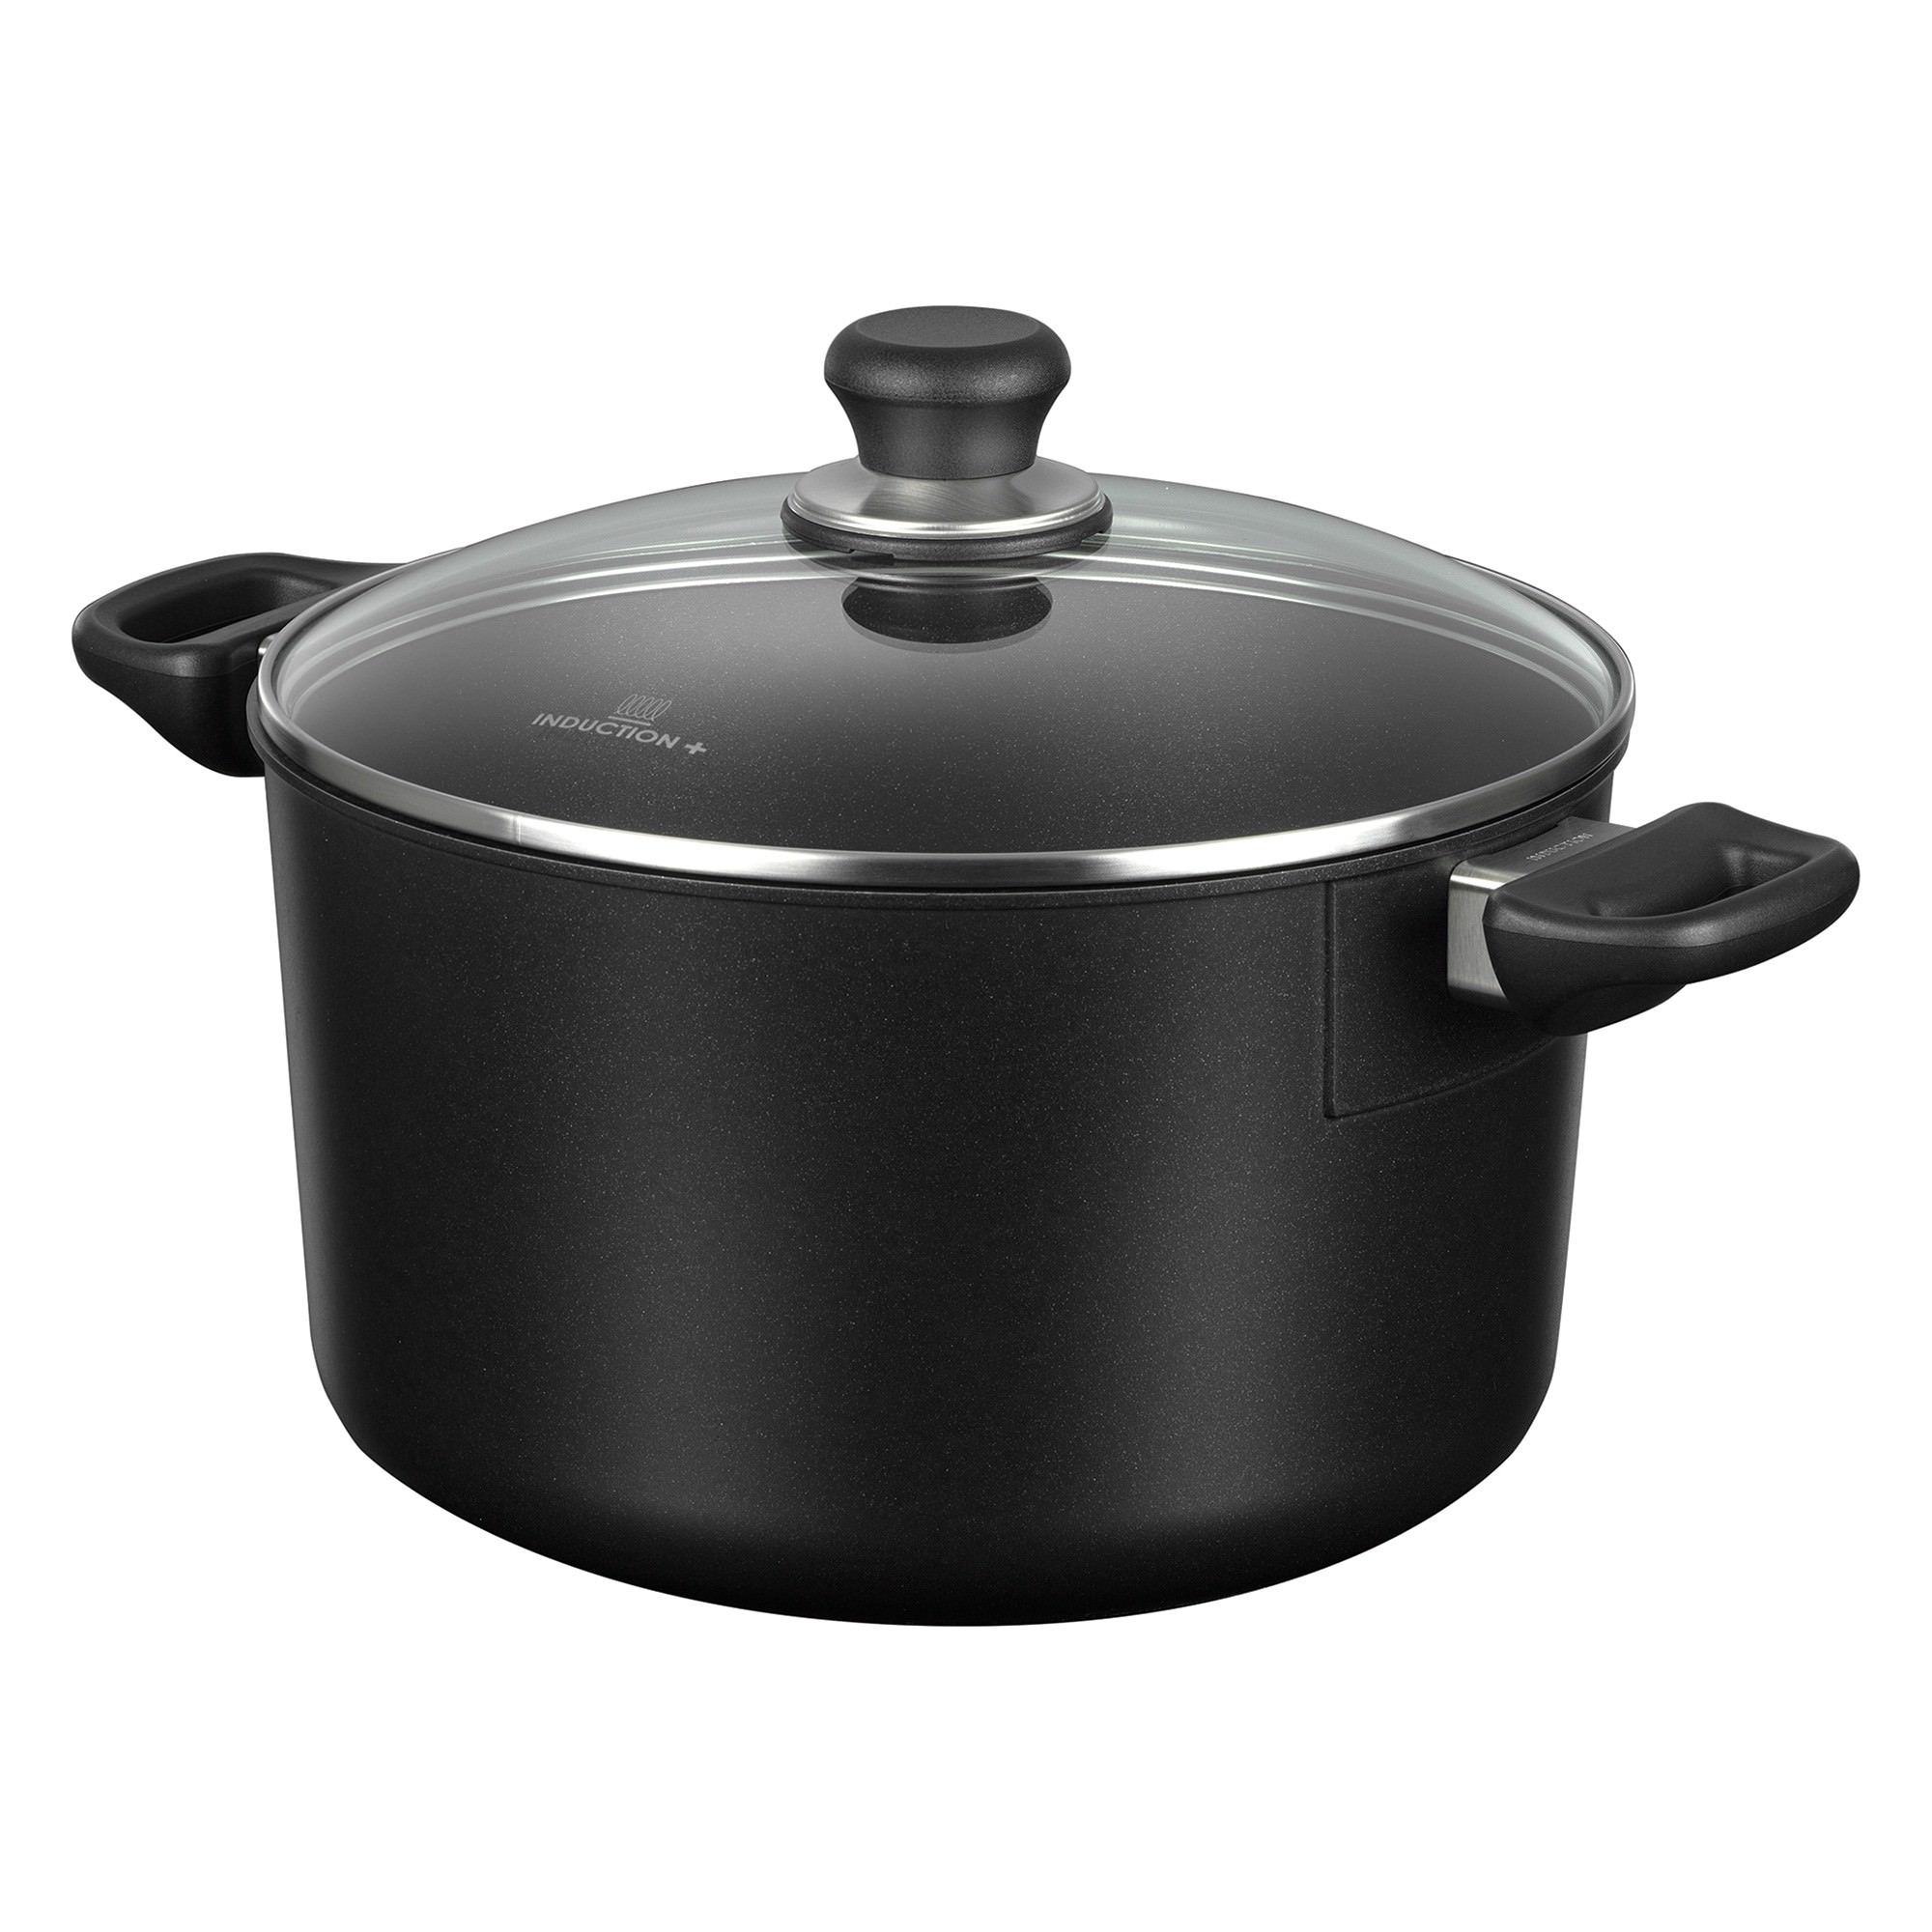 Scanpan Induction Plus Non-stick 26cm Tall Dutch Oven with Lid